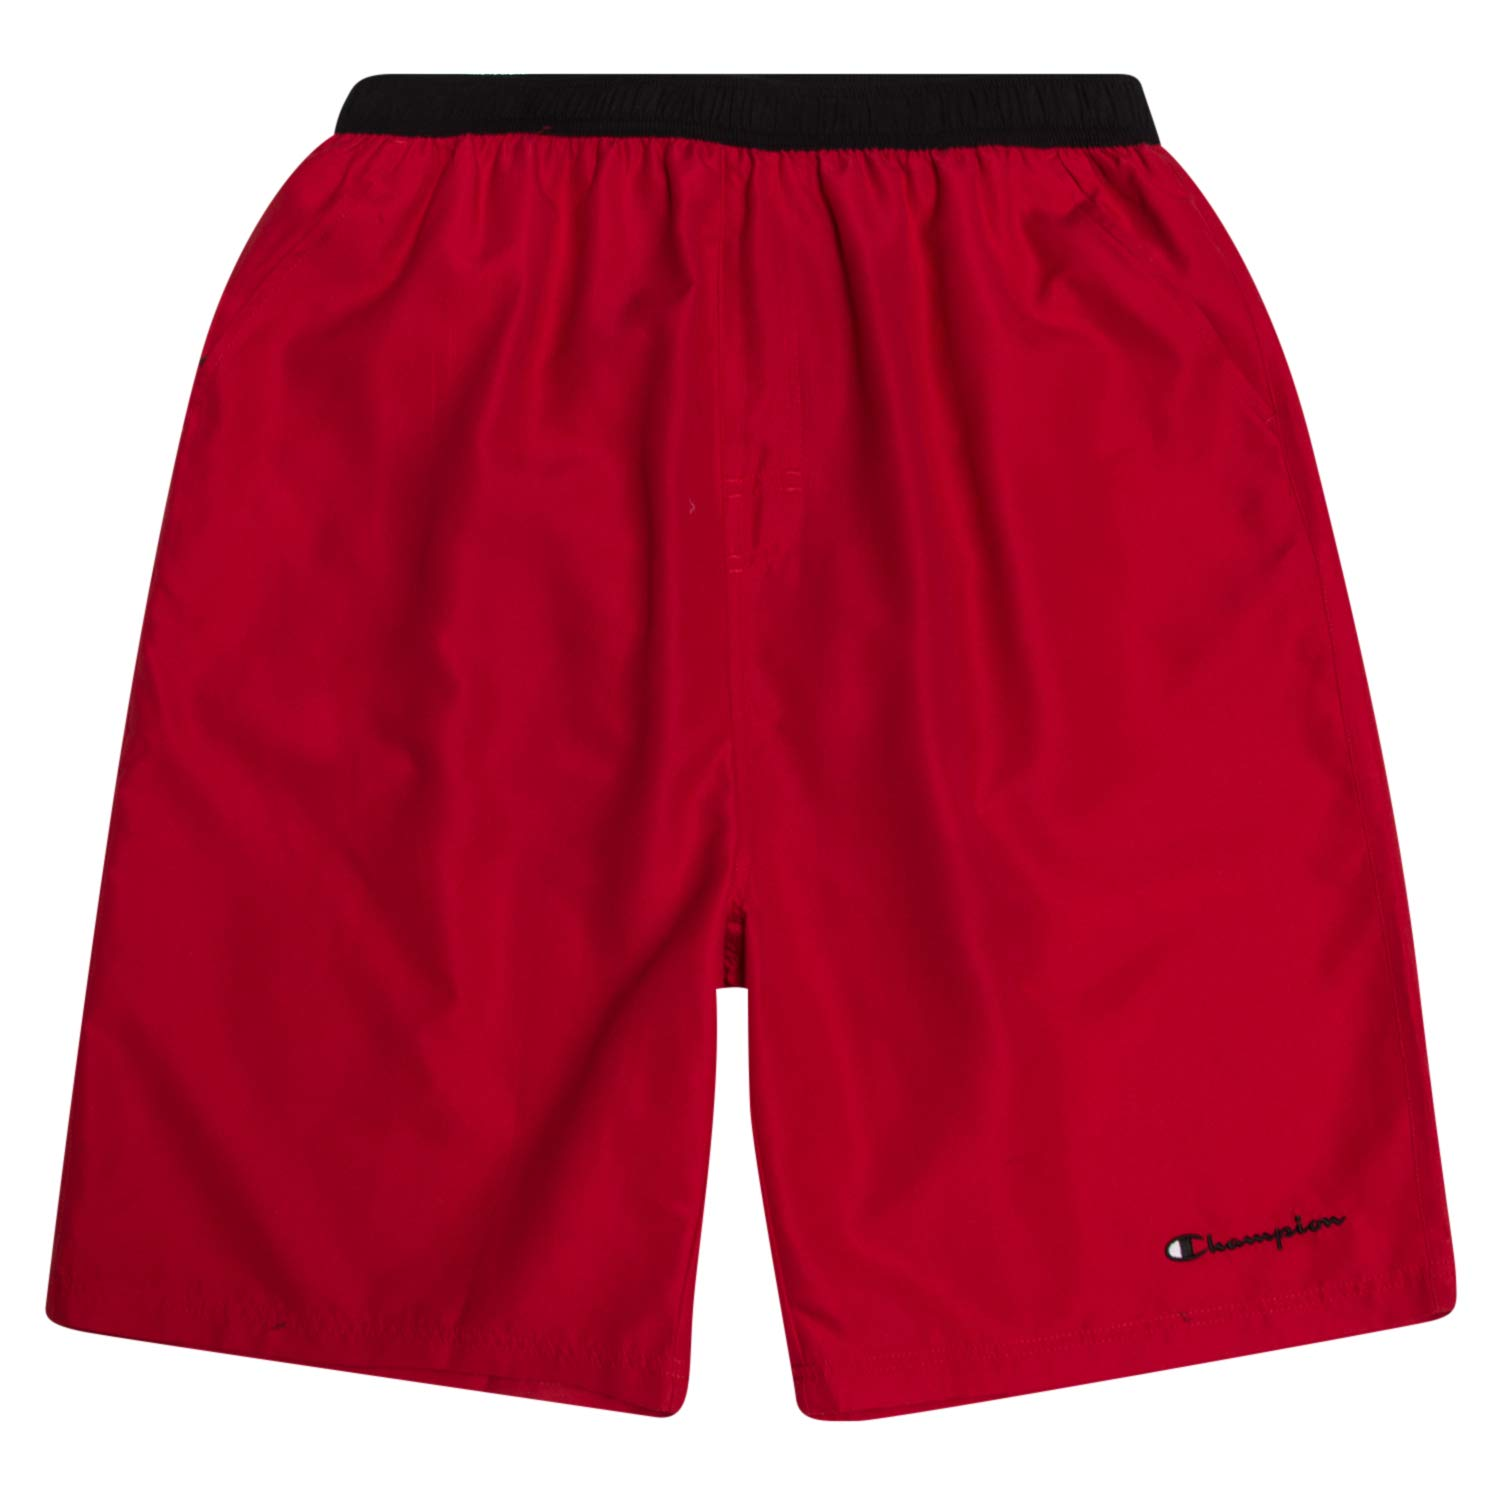 Champion Mens Big and Tall Swim Trunks with Classic Script Logo and Quick Dry Technology Red/Black by Champion